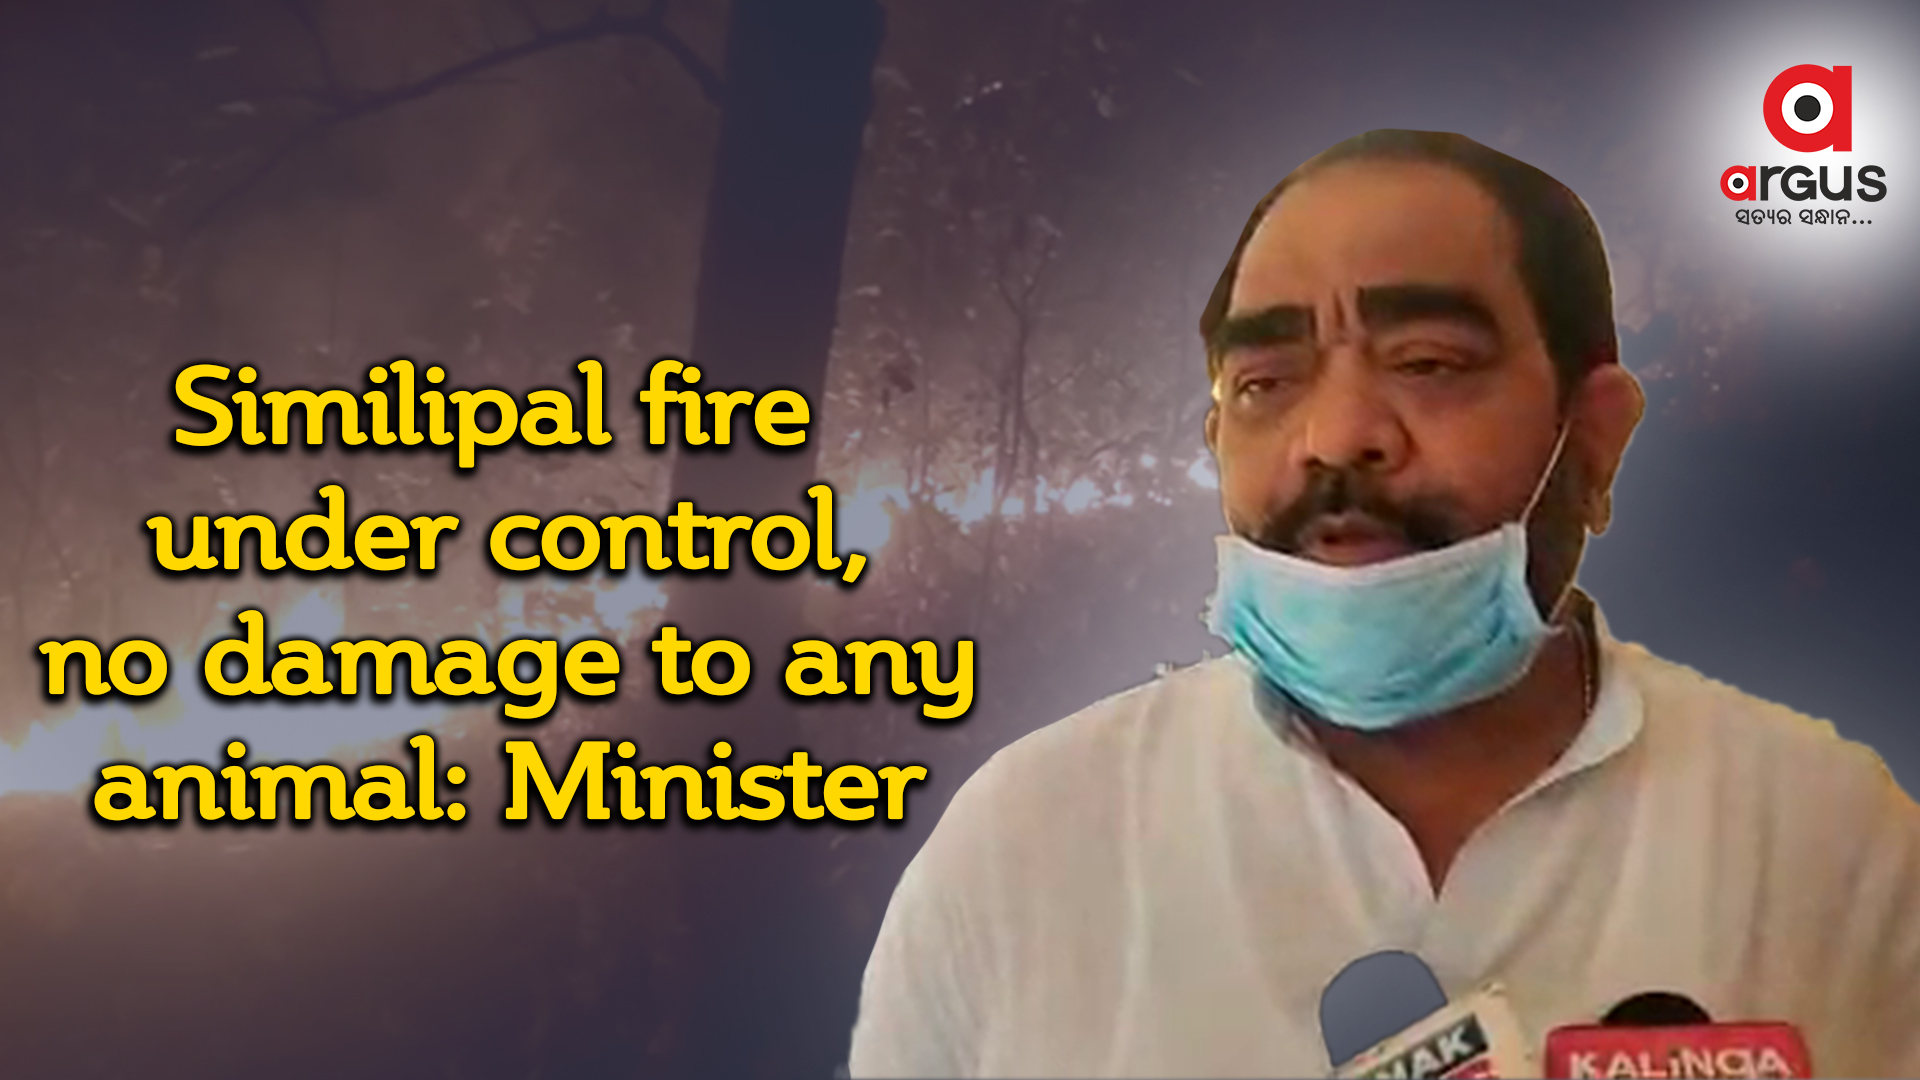 Similipal fire under control, no damage to any animal: Minister